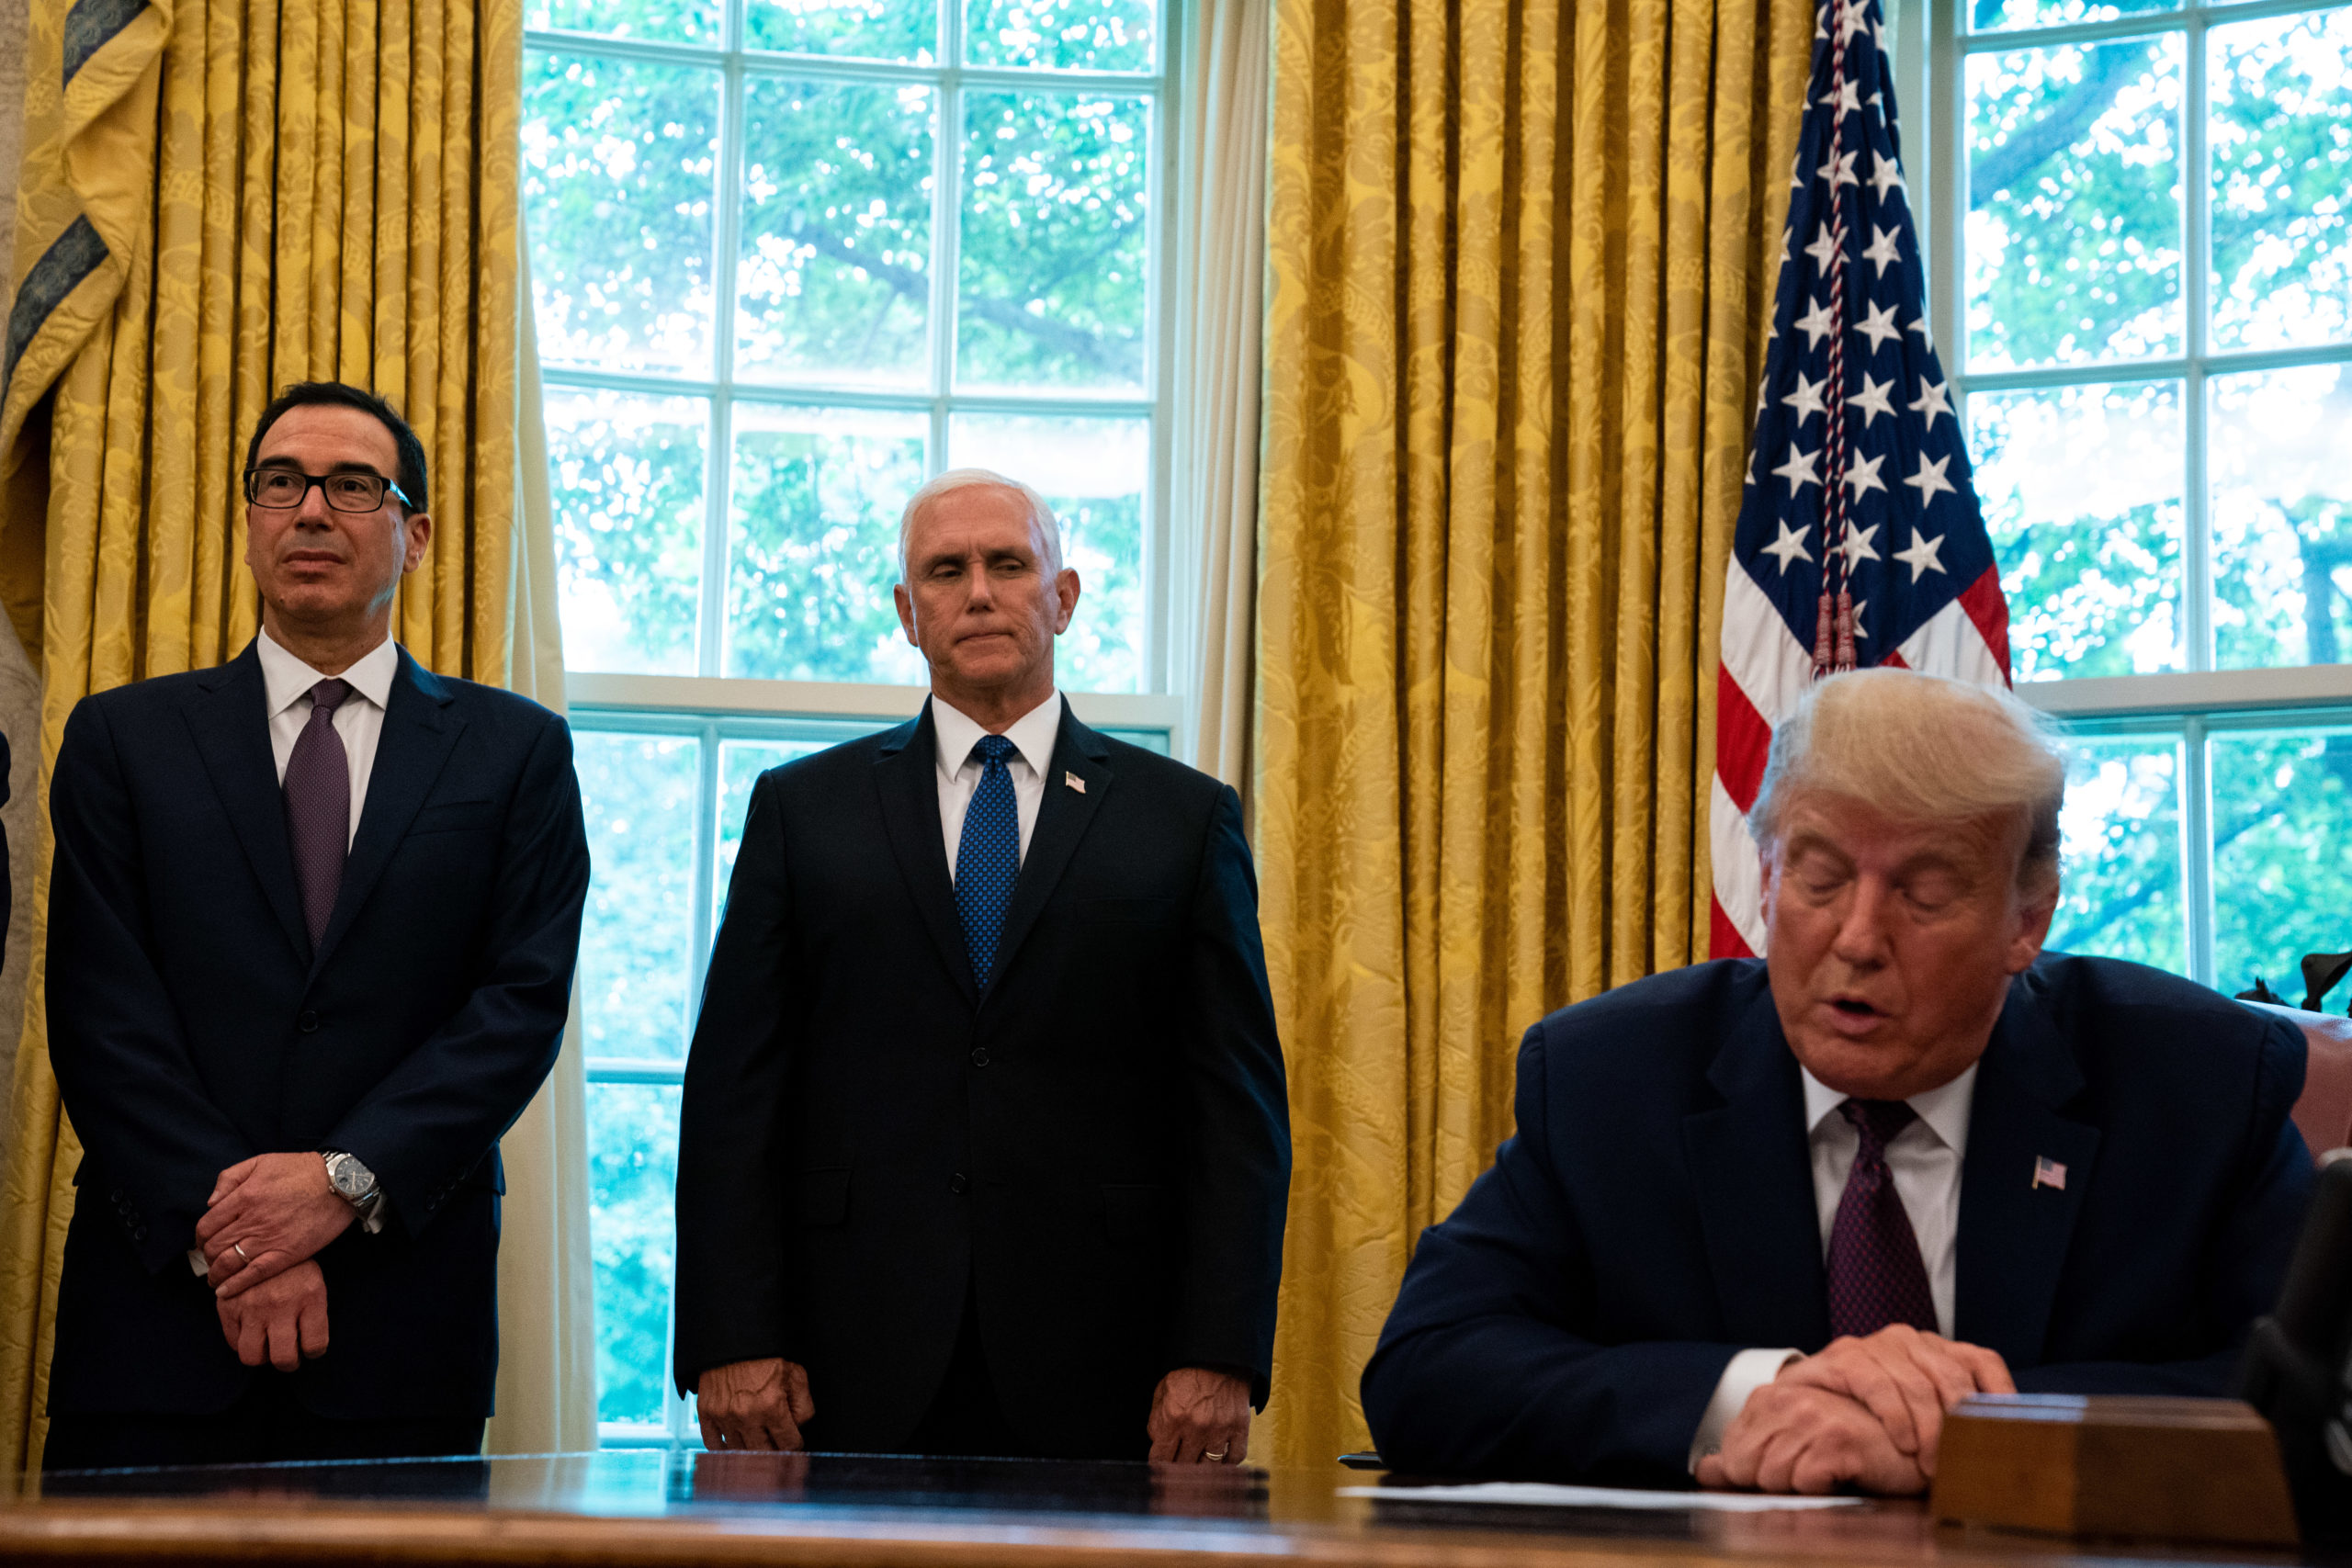 WASHINGTON, DC - SEPTEMBER 11: U.S. President Donald Trump, flanked by U.S. Treasury Secretary Steven Mnuchin (L) and U.S. Vice President Mike Pence (C), speaks in the Oval Office to announce that Bahrain will establish diplomatic relations with Israel, at the White House in Washington, DC on September 11, 2020. The announcement follows one last month by Israel and the United Arab Emirates that they would seek to normalize relations with each other. (Photo by Anna Moneymaker-Pool/Getty Images)